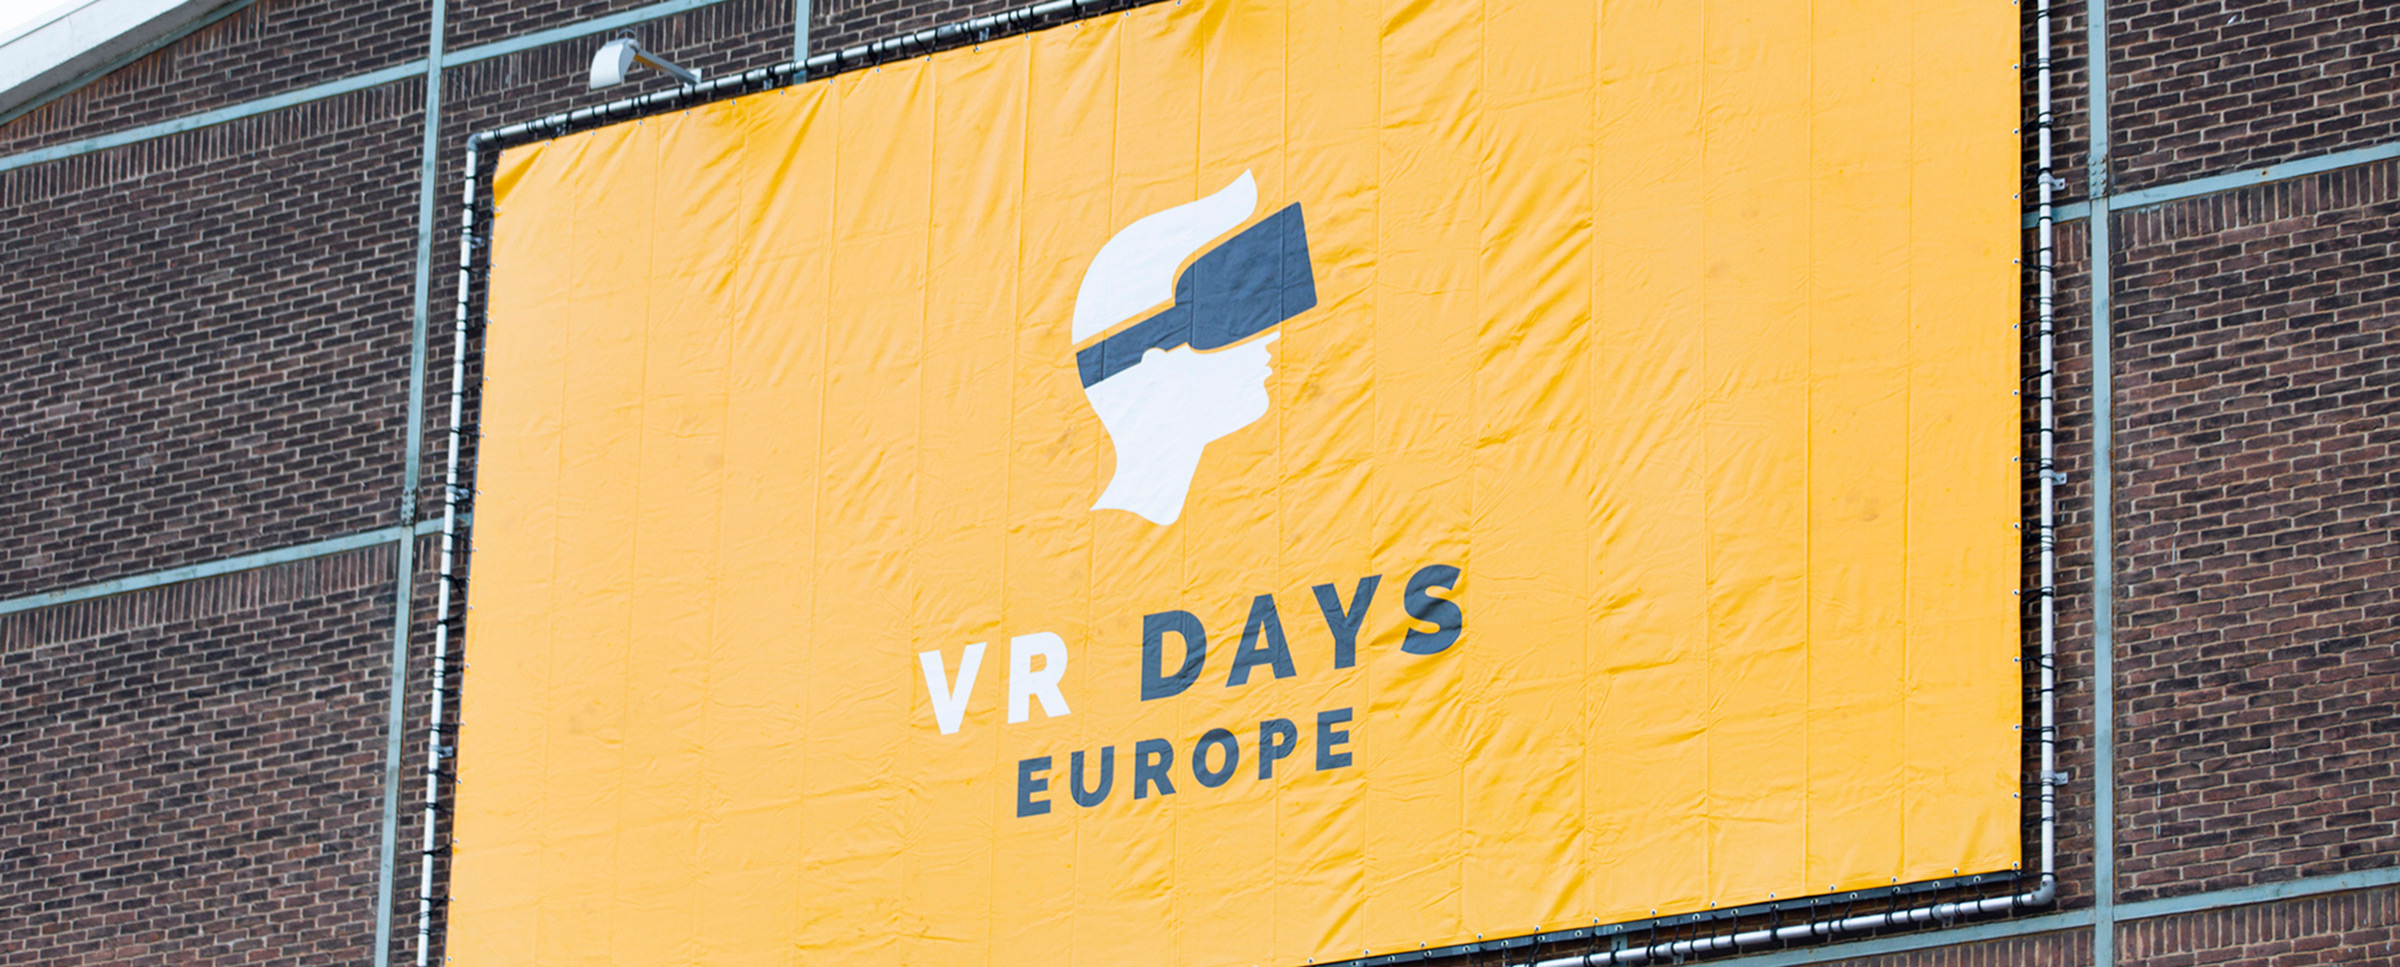 VR Days Europe banner hanging in front of Kromhouthal, Photo by VR Days Europe